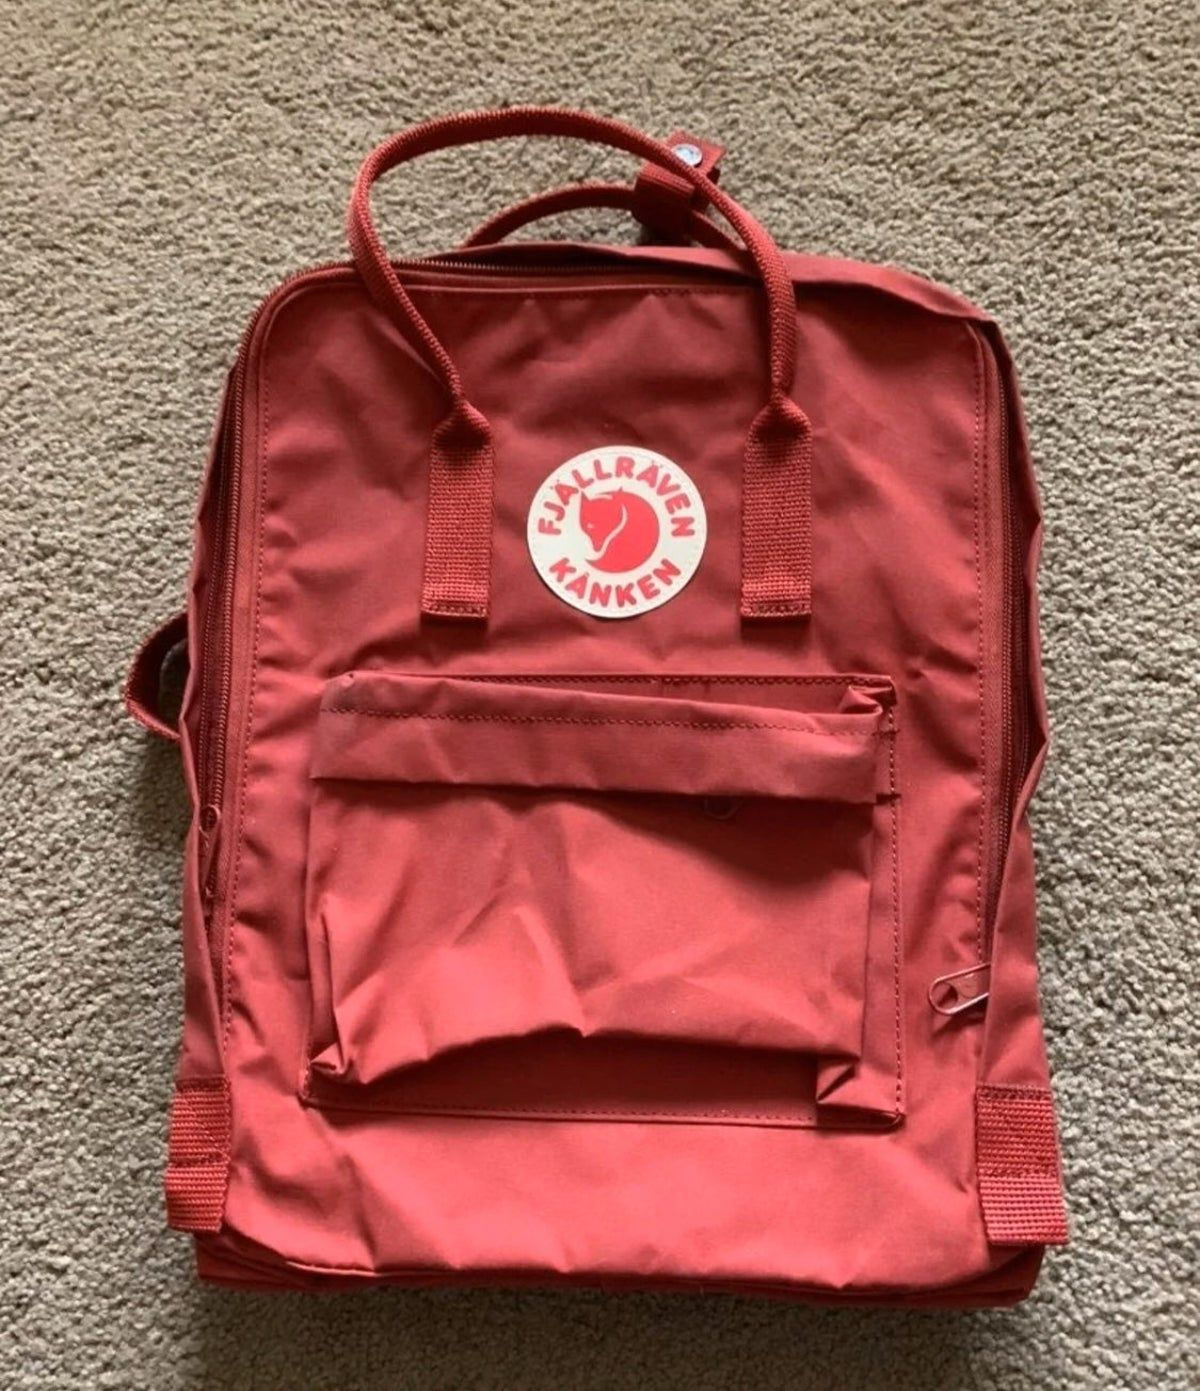 Wine Red Fjallraven Kanken Backpack In 2020 Fjallraven Kanken Backpack Fjallraven Kanken Backpacks